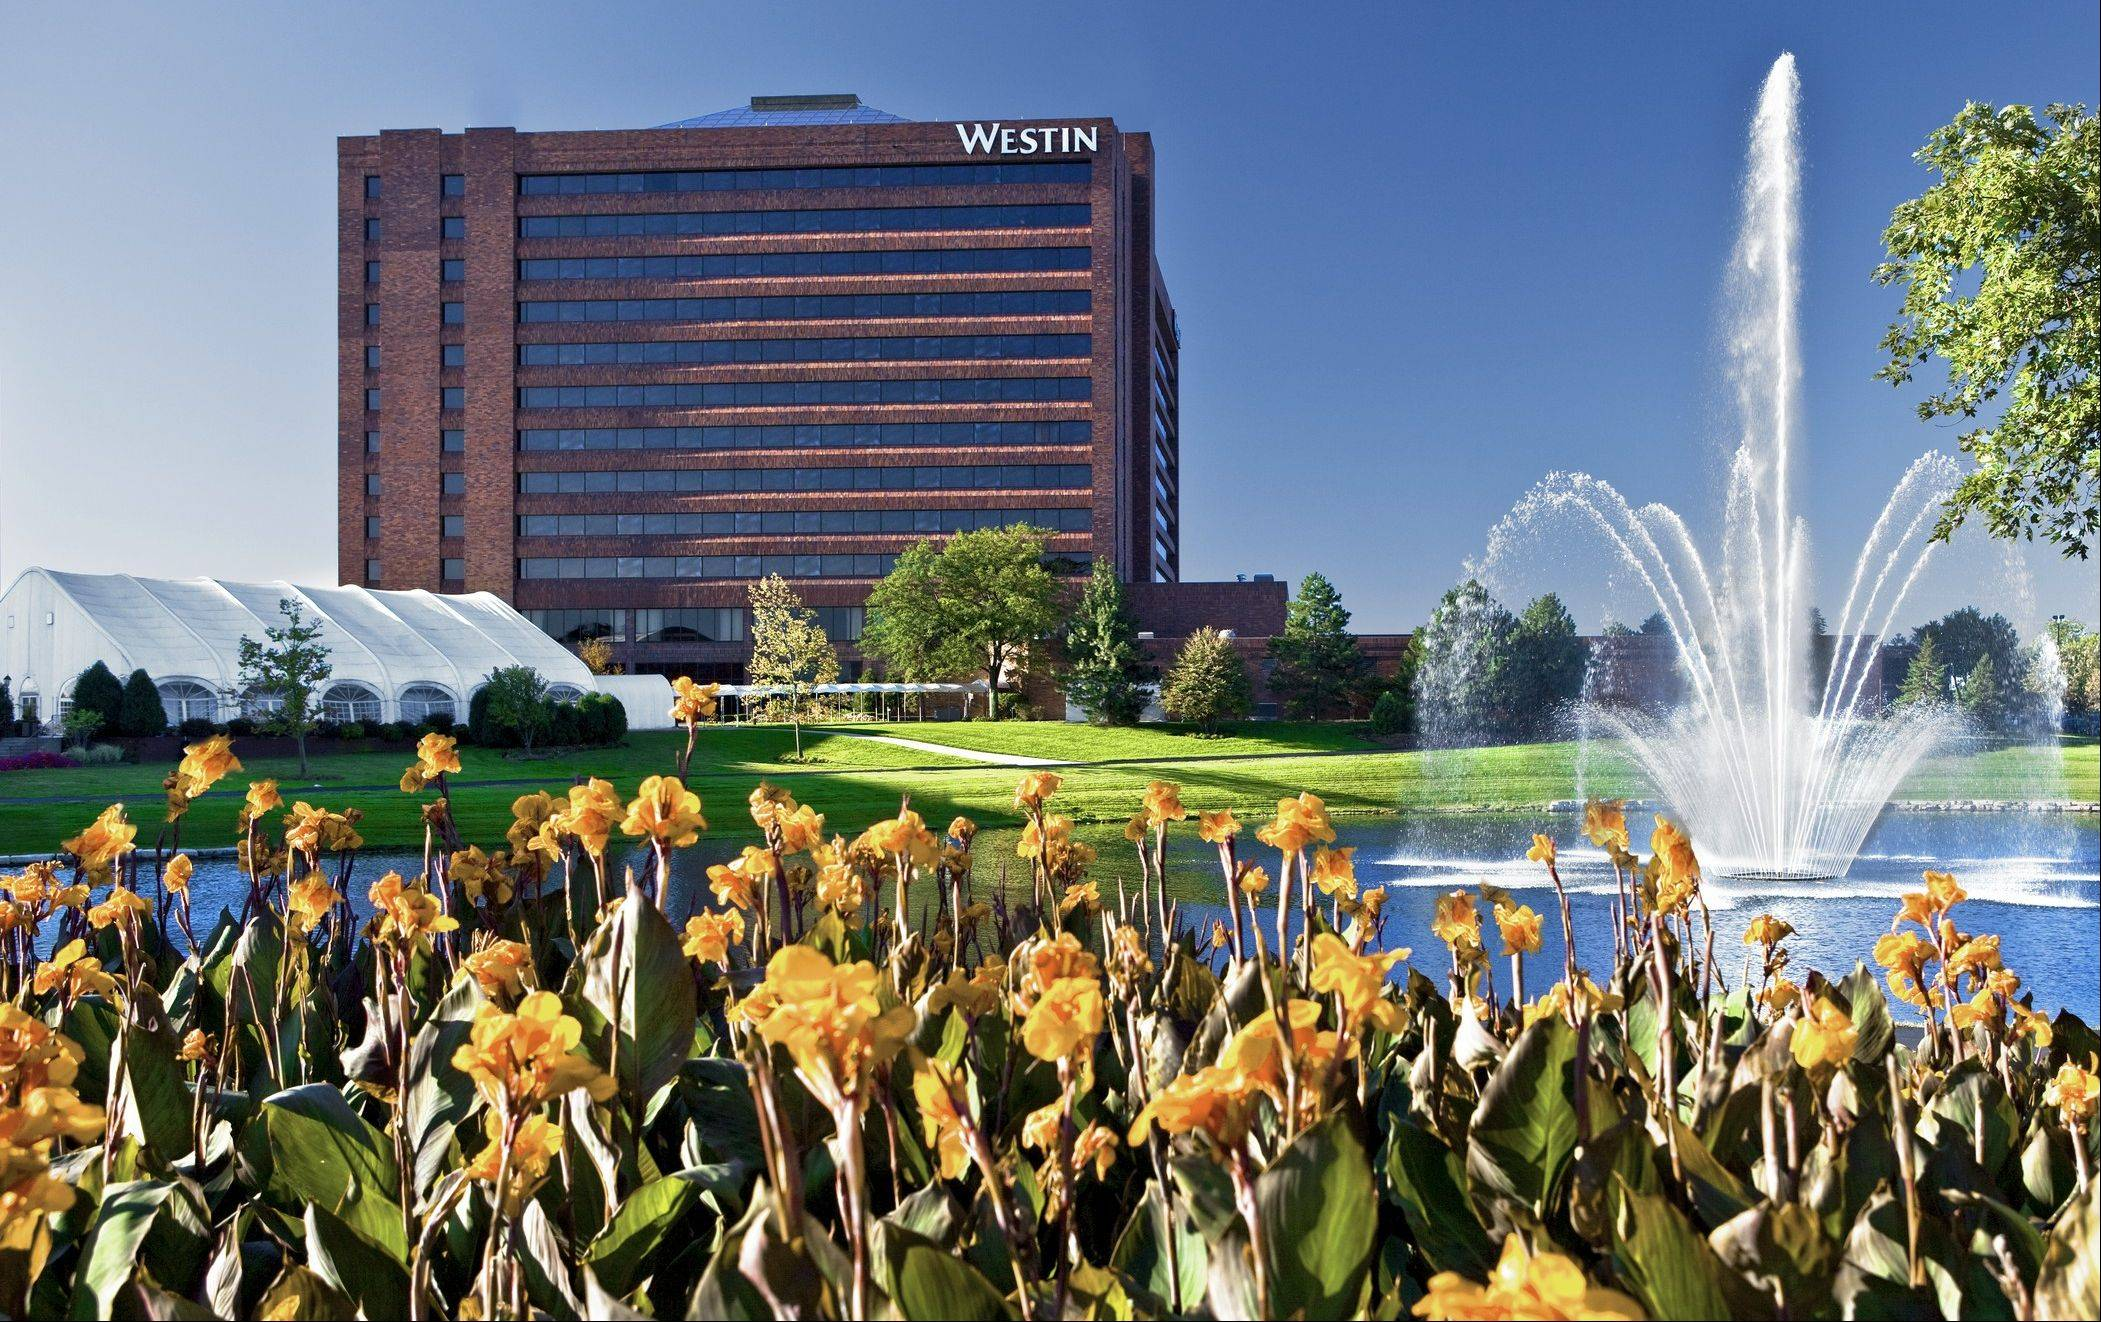 The Westin Chicago Northwest Hotel in Itasca has been getting more corporate bookings during the week and sports, religious and fraternal organizations on the weekends.